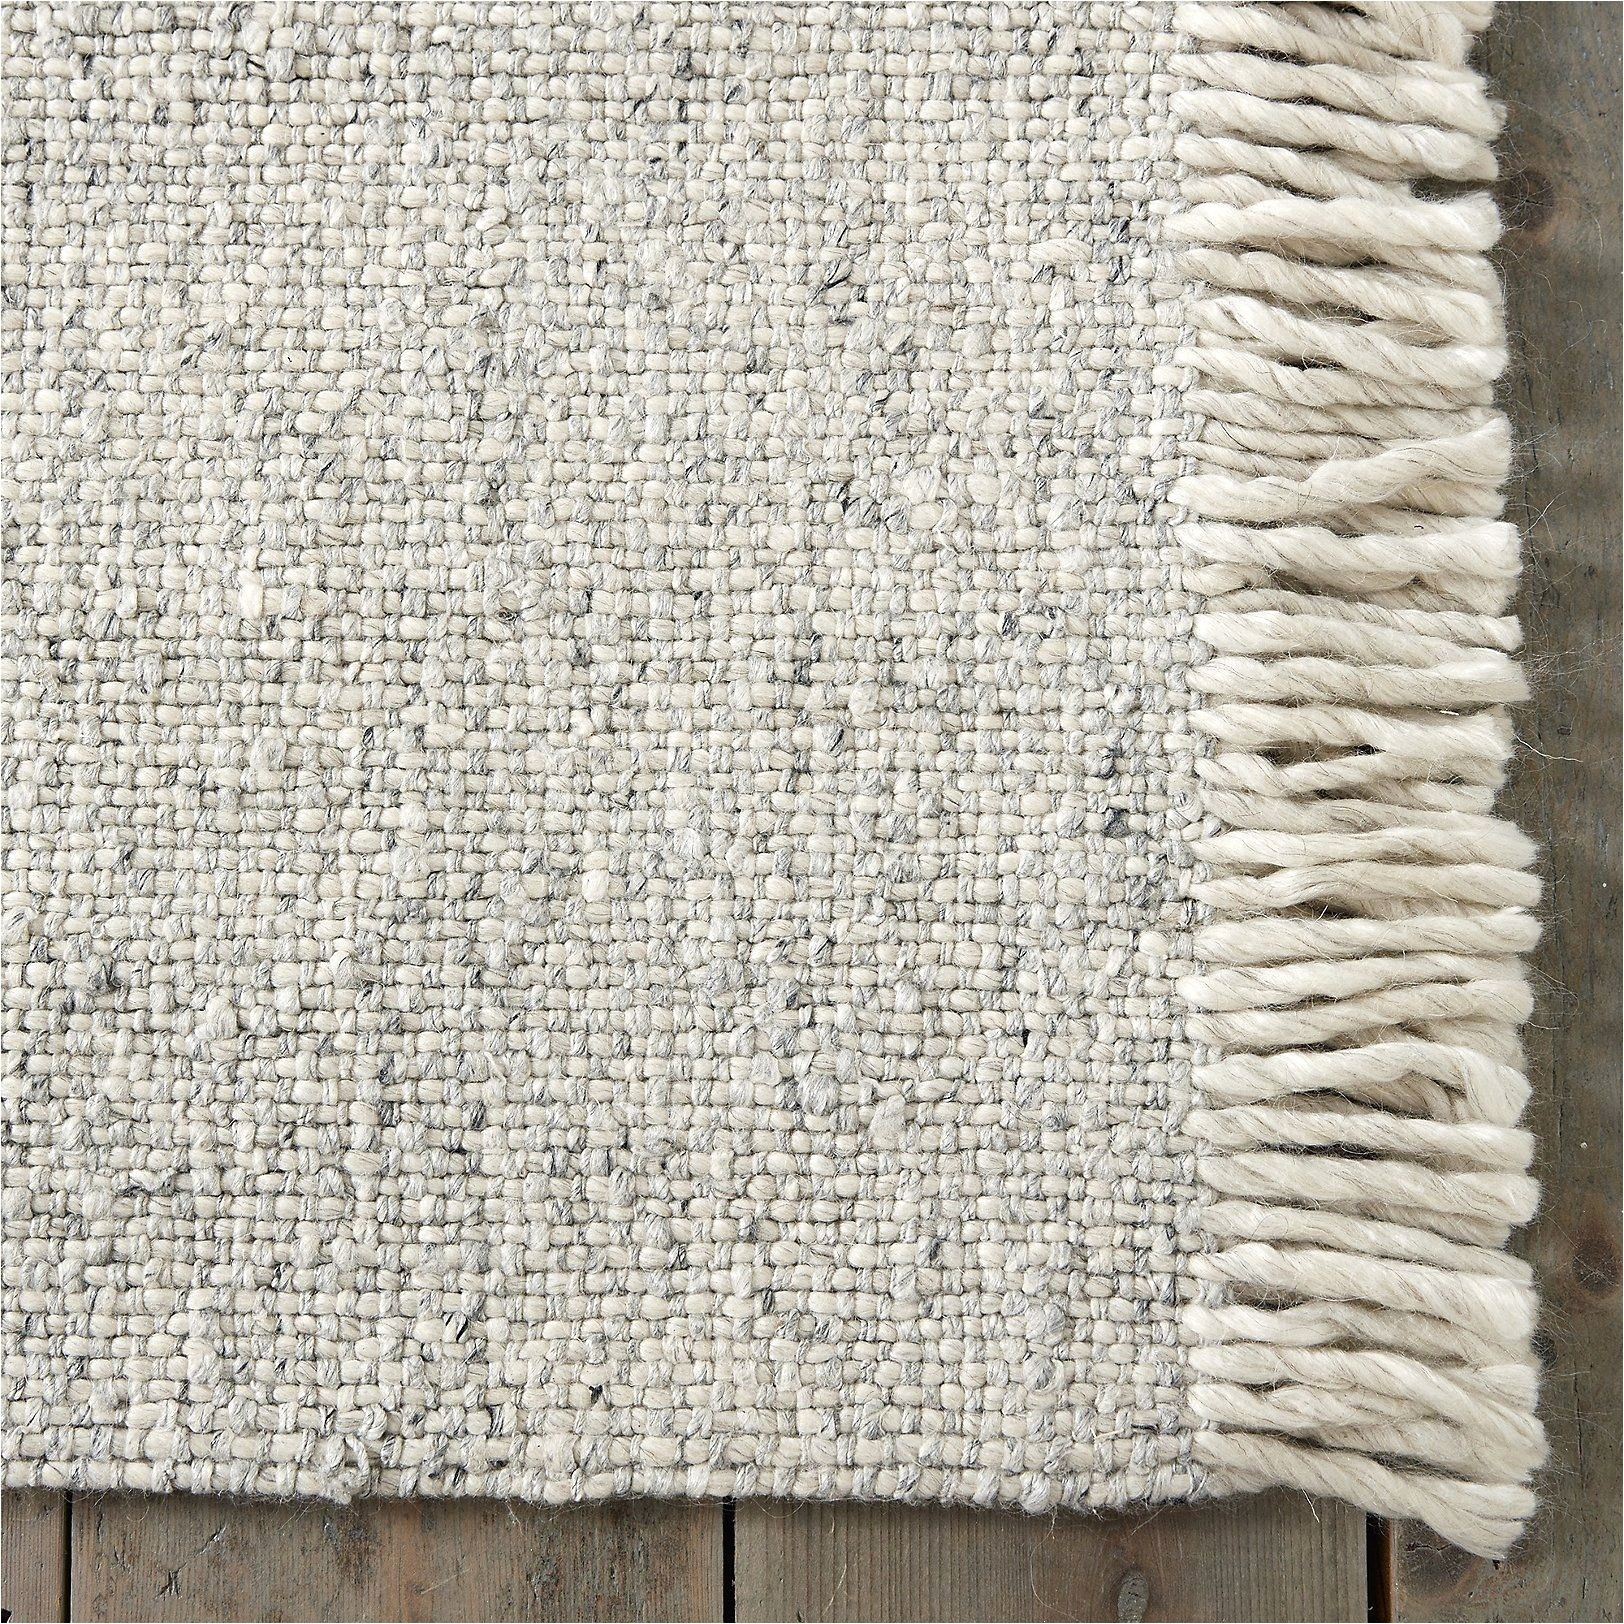 artisan de luxe rug unique harrogate wool tassel rug rugs home accessories home